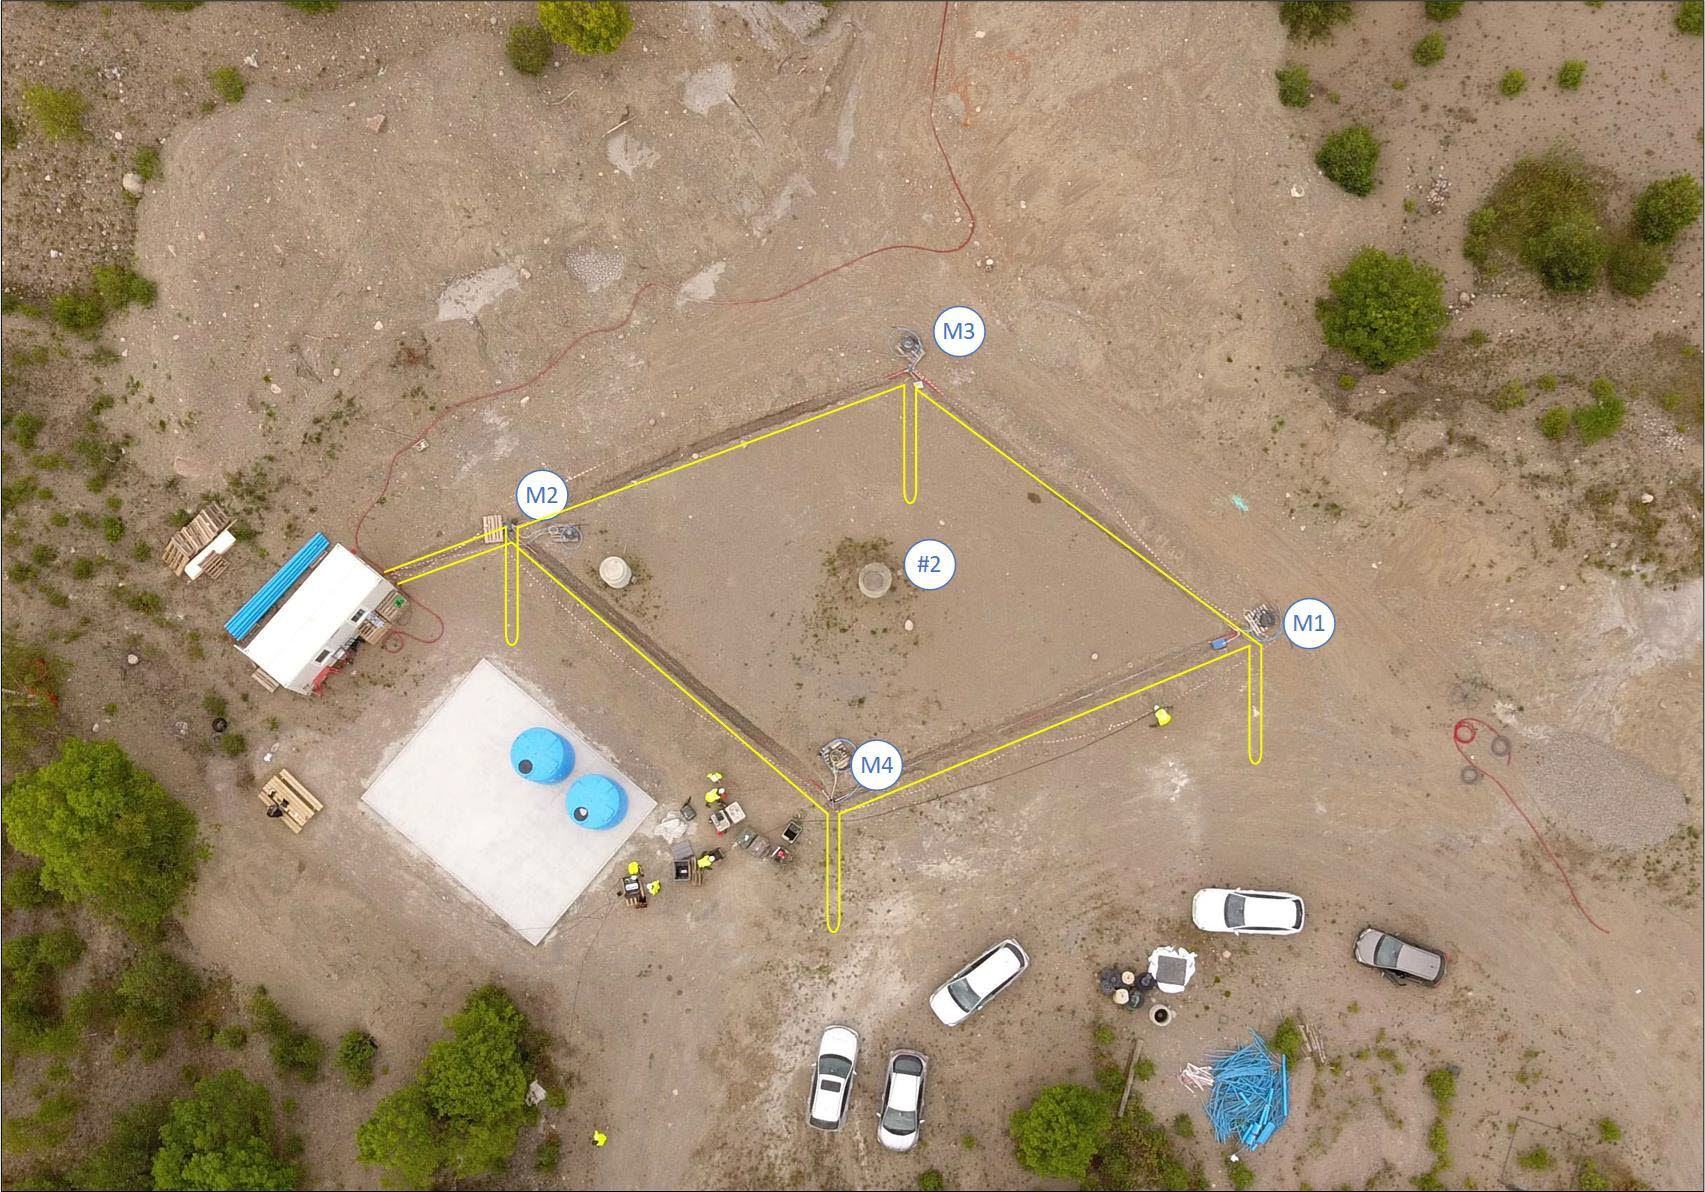 Aerial view of the Svelvik CO2 Field Lab with injection (#2) and monitoring wells (M1-M4) marked. The loops with fibre optic cables (several different commercial and research types) are shown yellow with tongues indicating how the cables also go down into the wells.